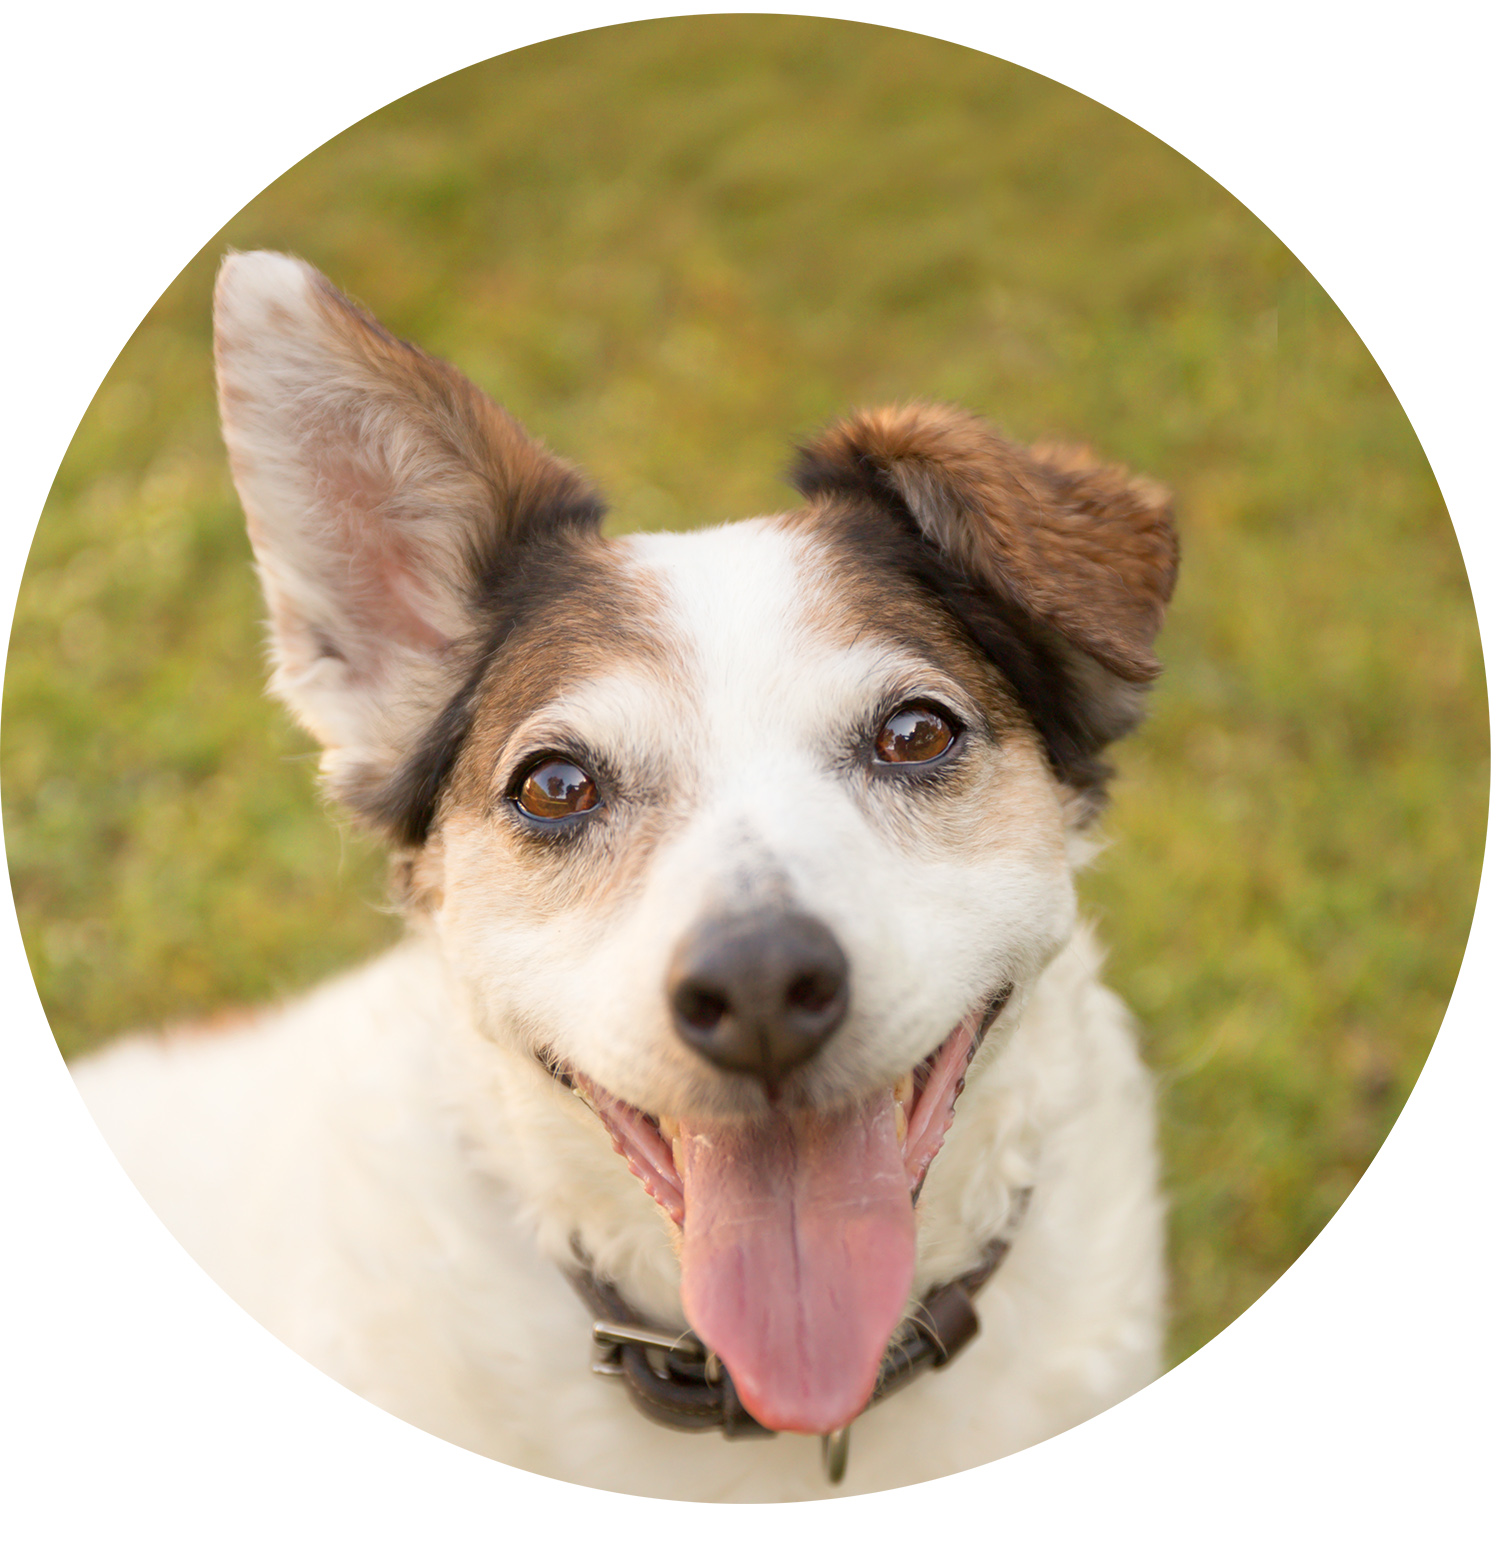 jack russell, dog on grass, dog photo